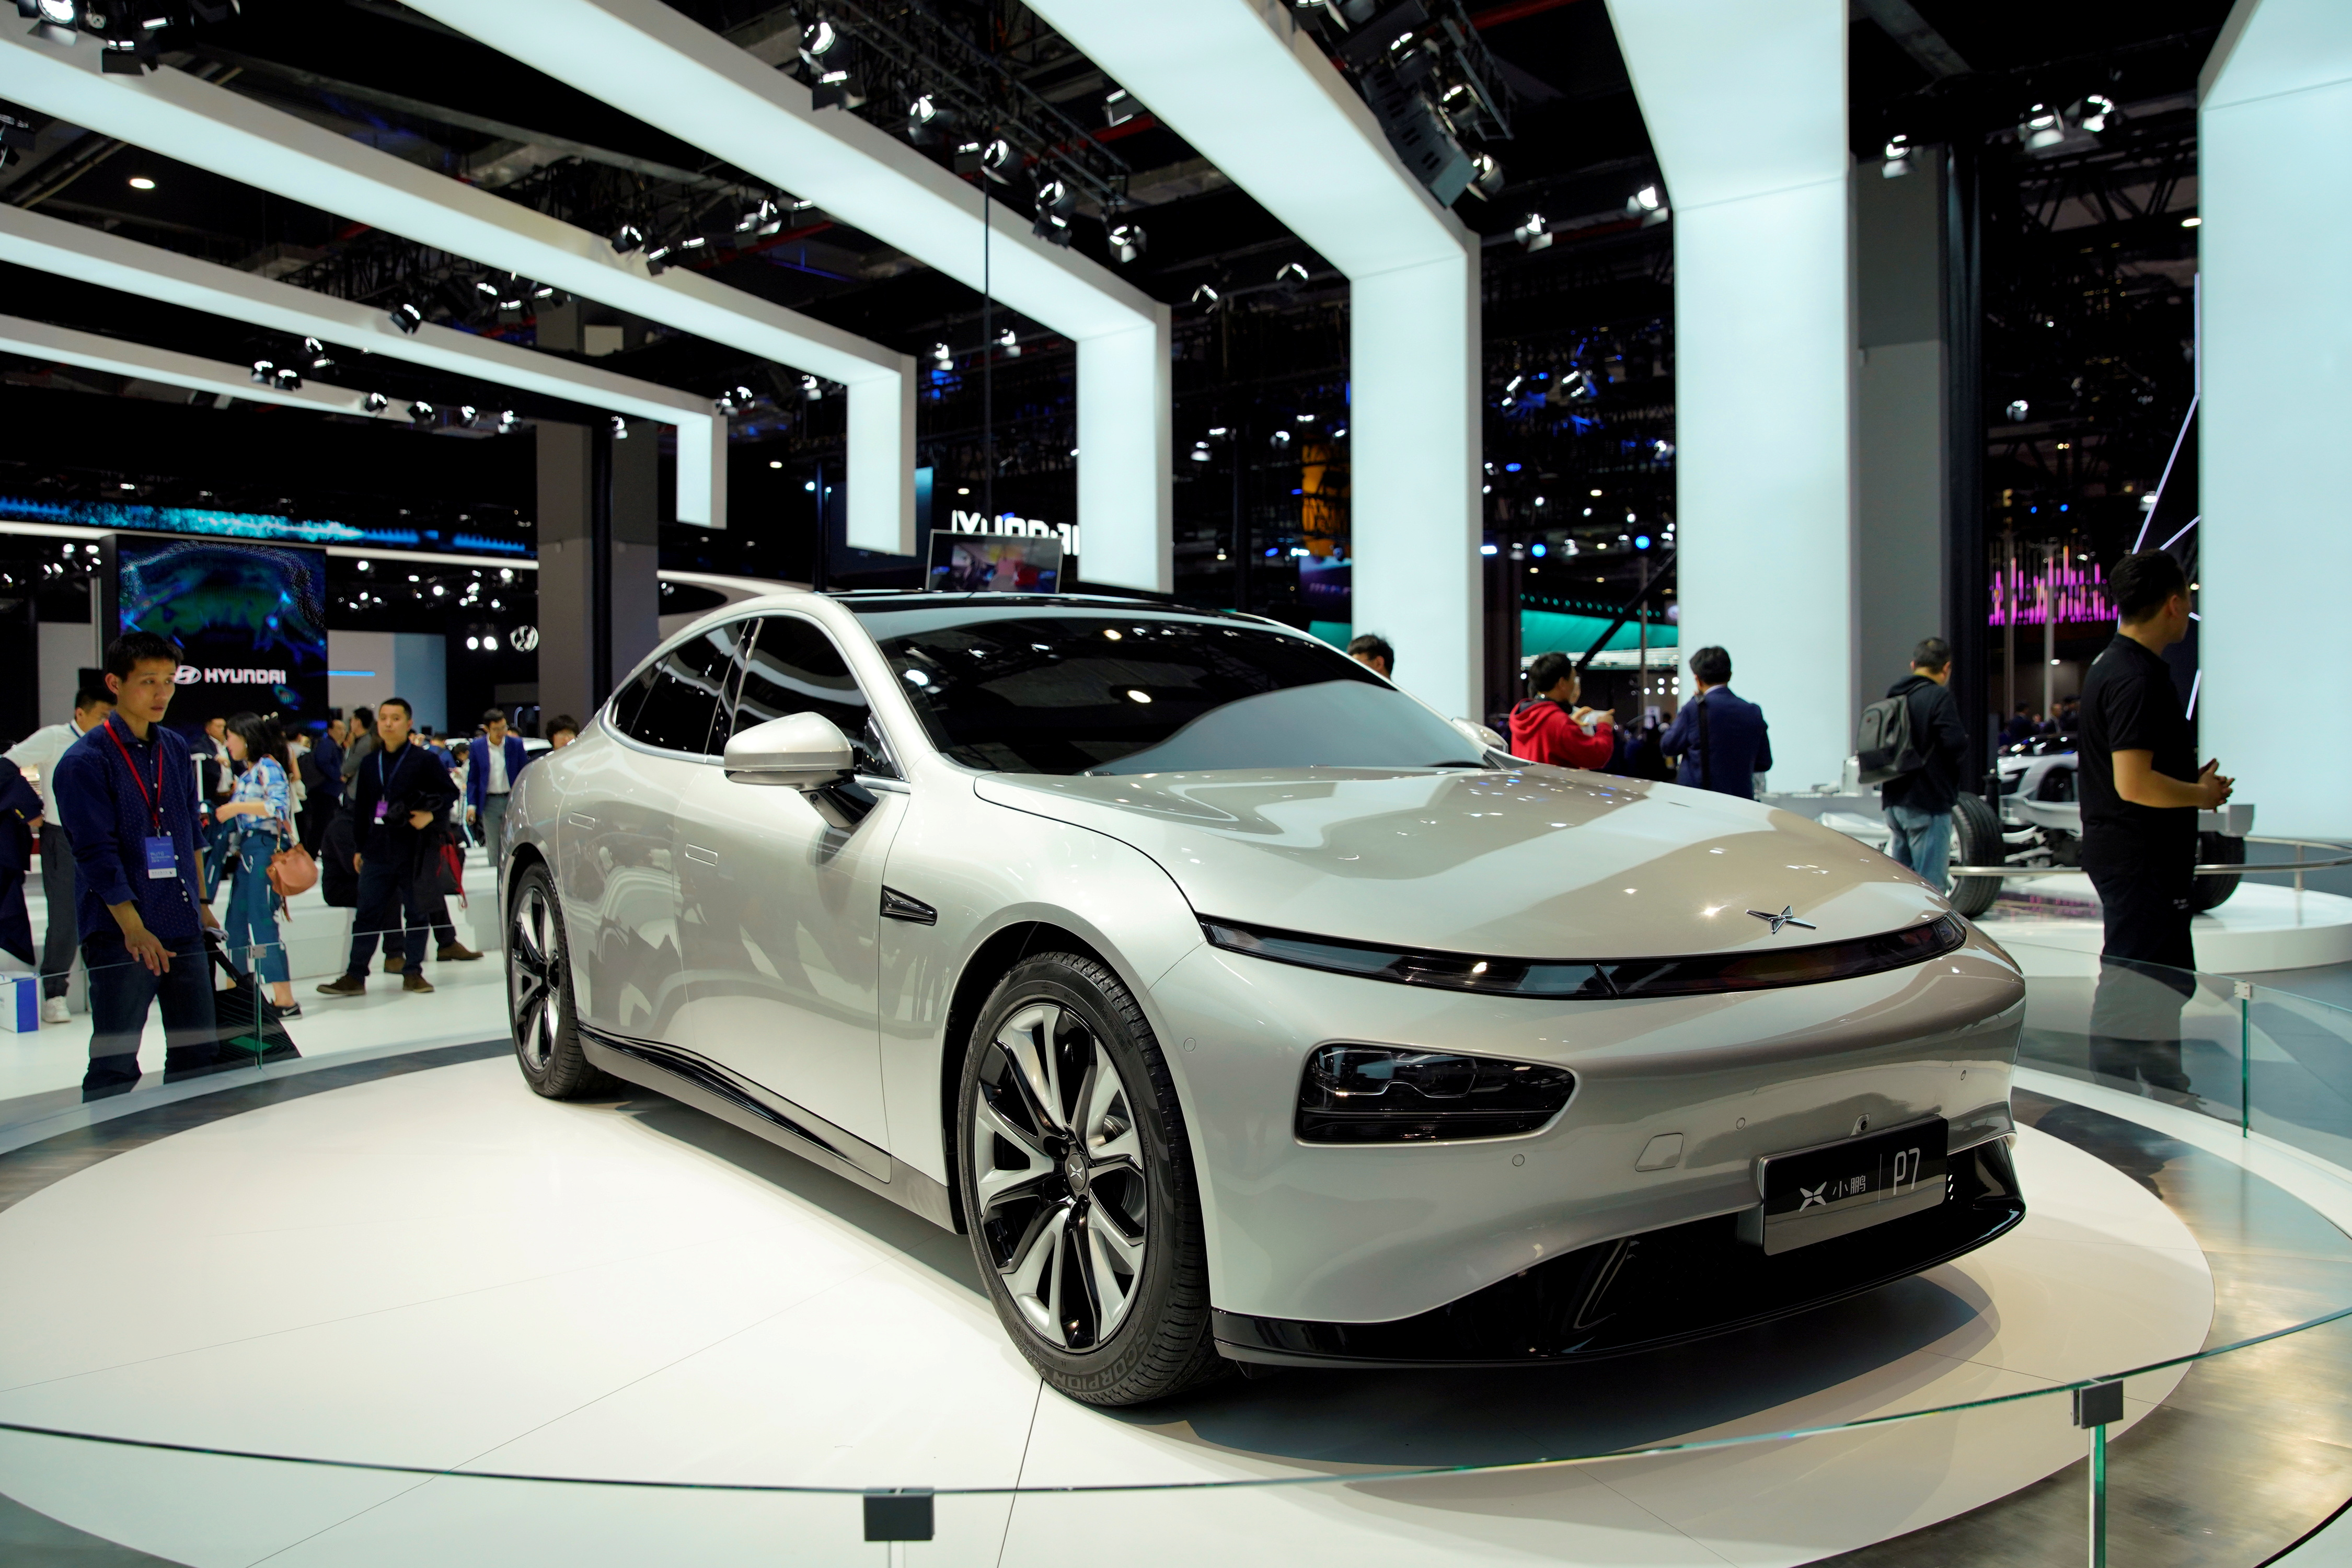 XPeng's electric vehicle (EV) P7 is unveiled during the media day for Shanghai auto show in Shanghai, China April 16, 2019.